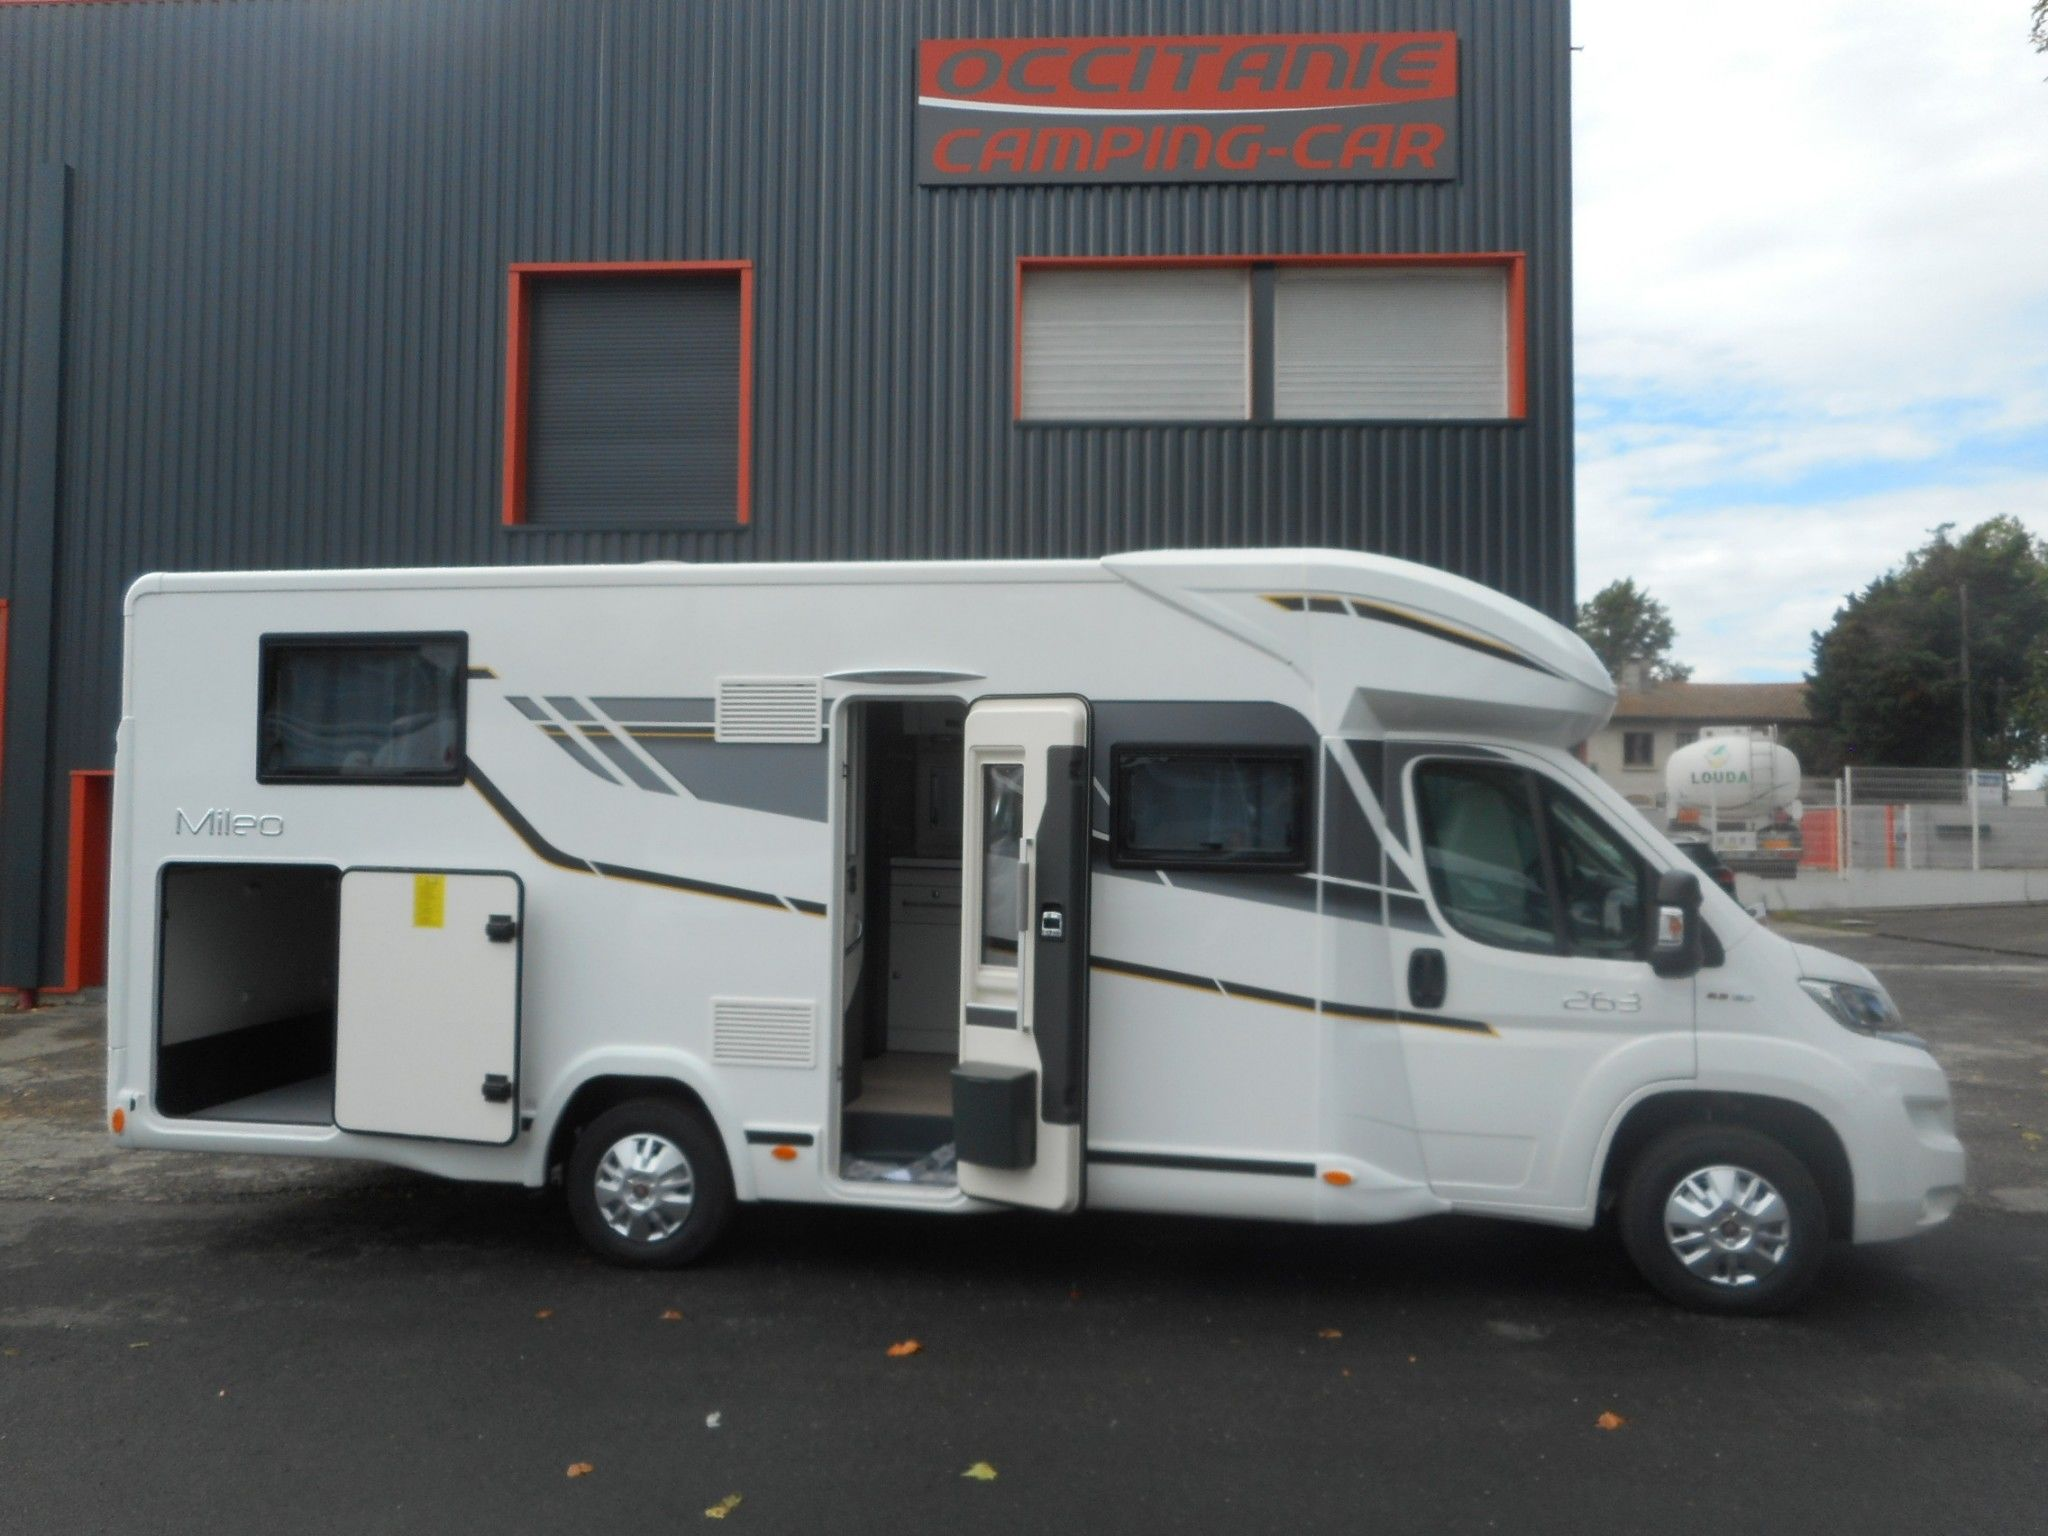 Camping-car BENIMAR MILEO 263 + DELIVERY PACK